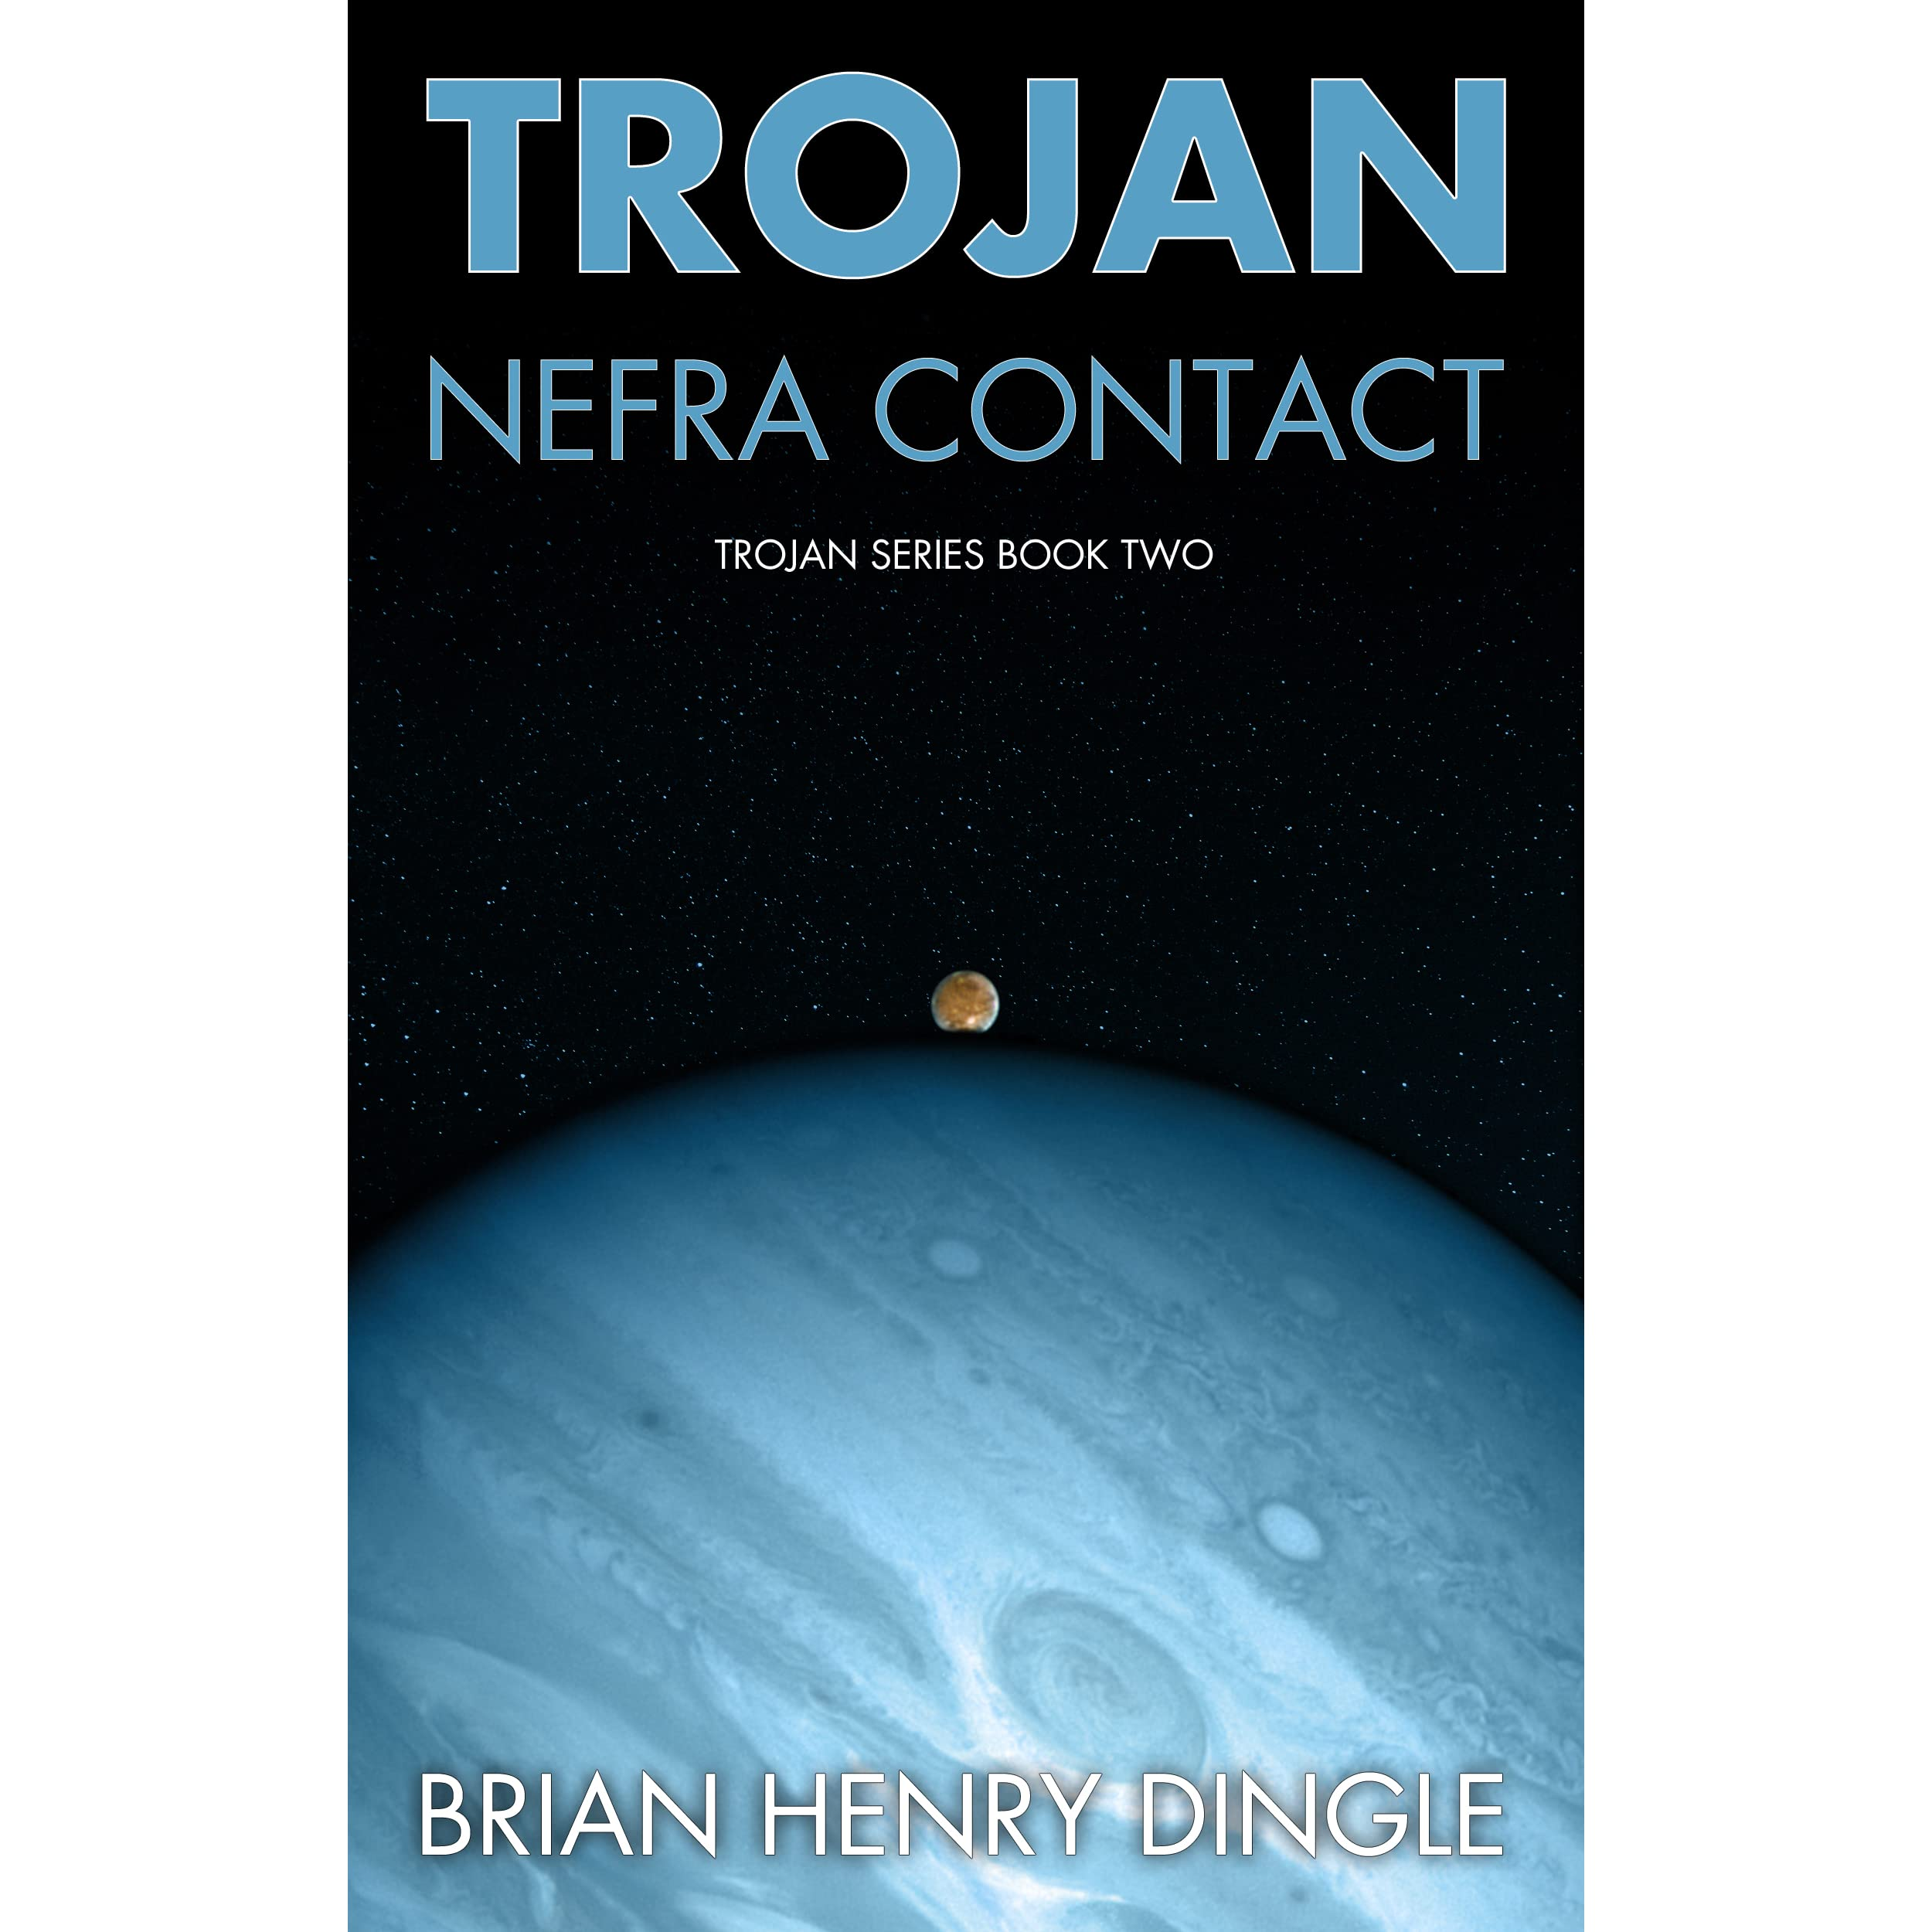 TROJAN: Nefra Contact by Brian Henry Dingle